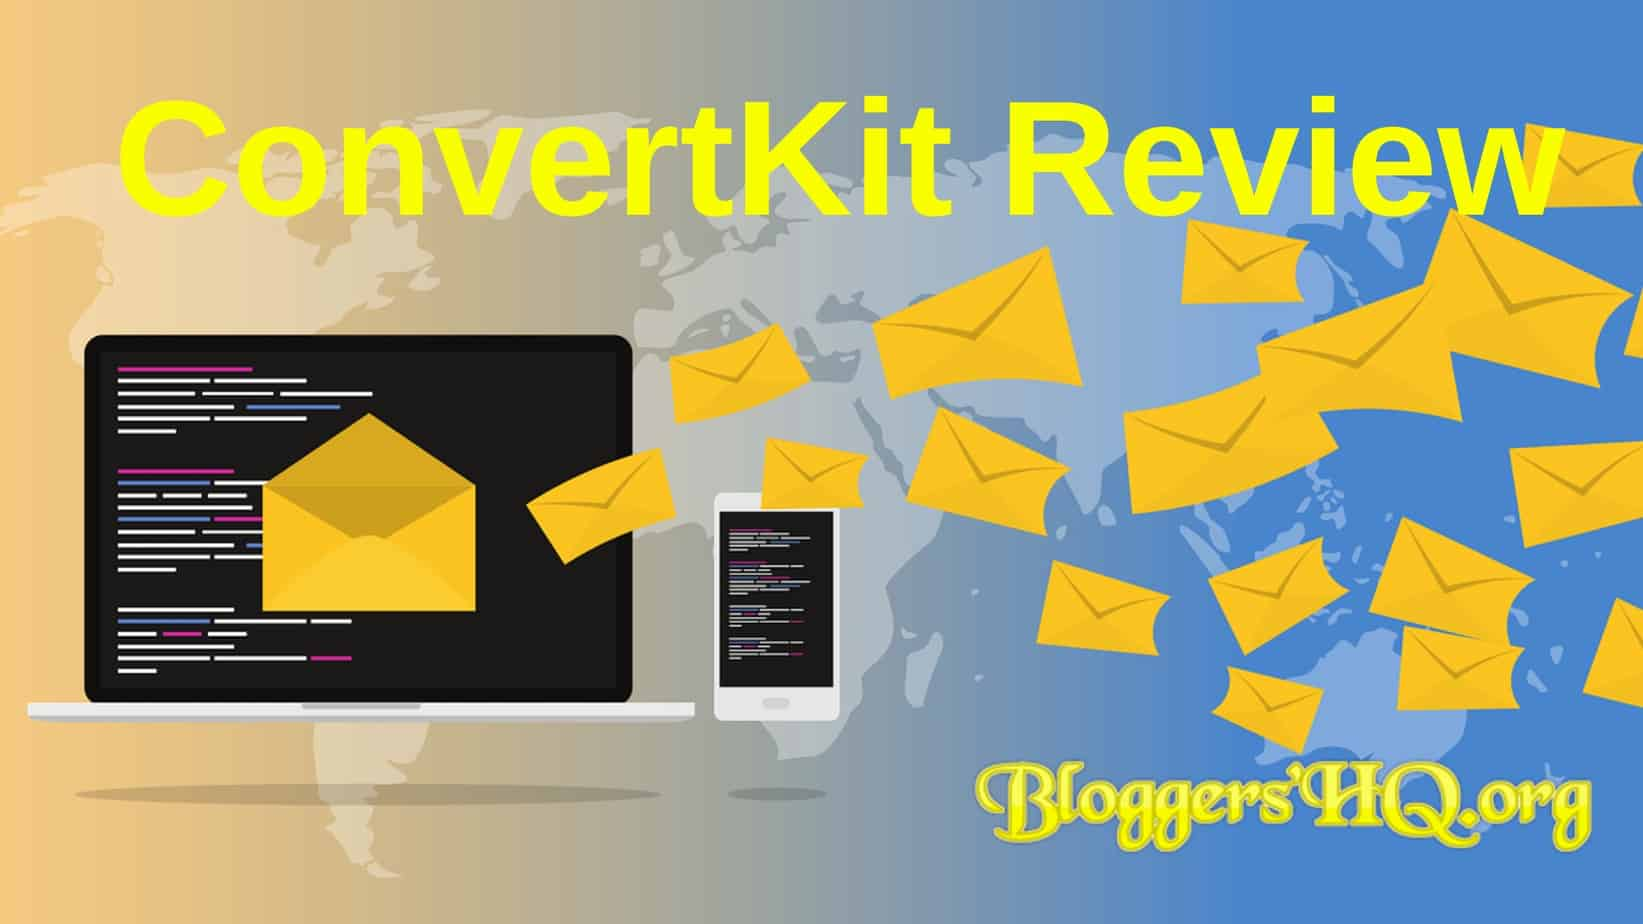 Convertkit Email Marketing Deals And Steals